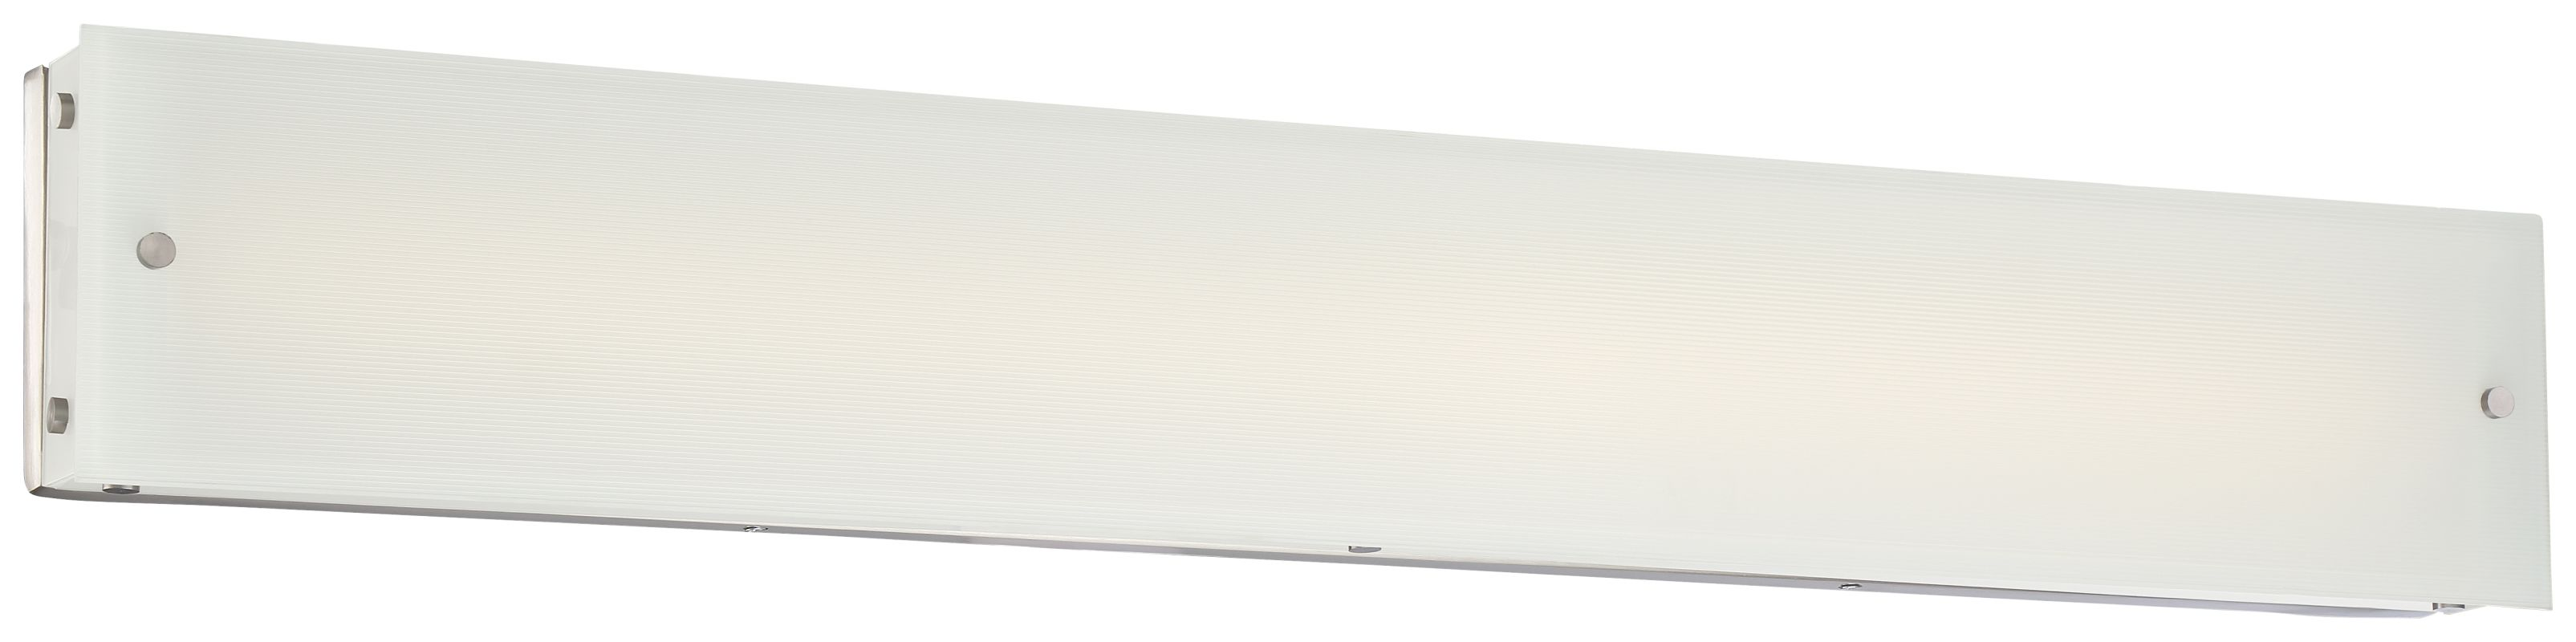 Kovacs P1324-084-L LED Bathroom Vanity Strip from the Button